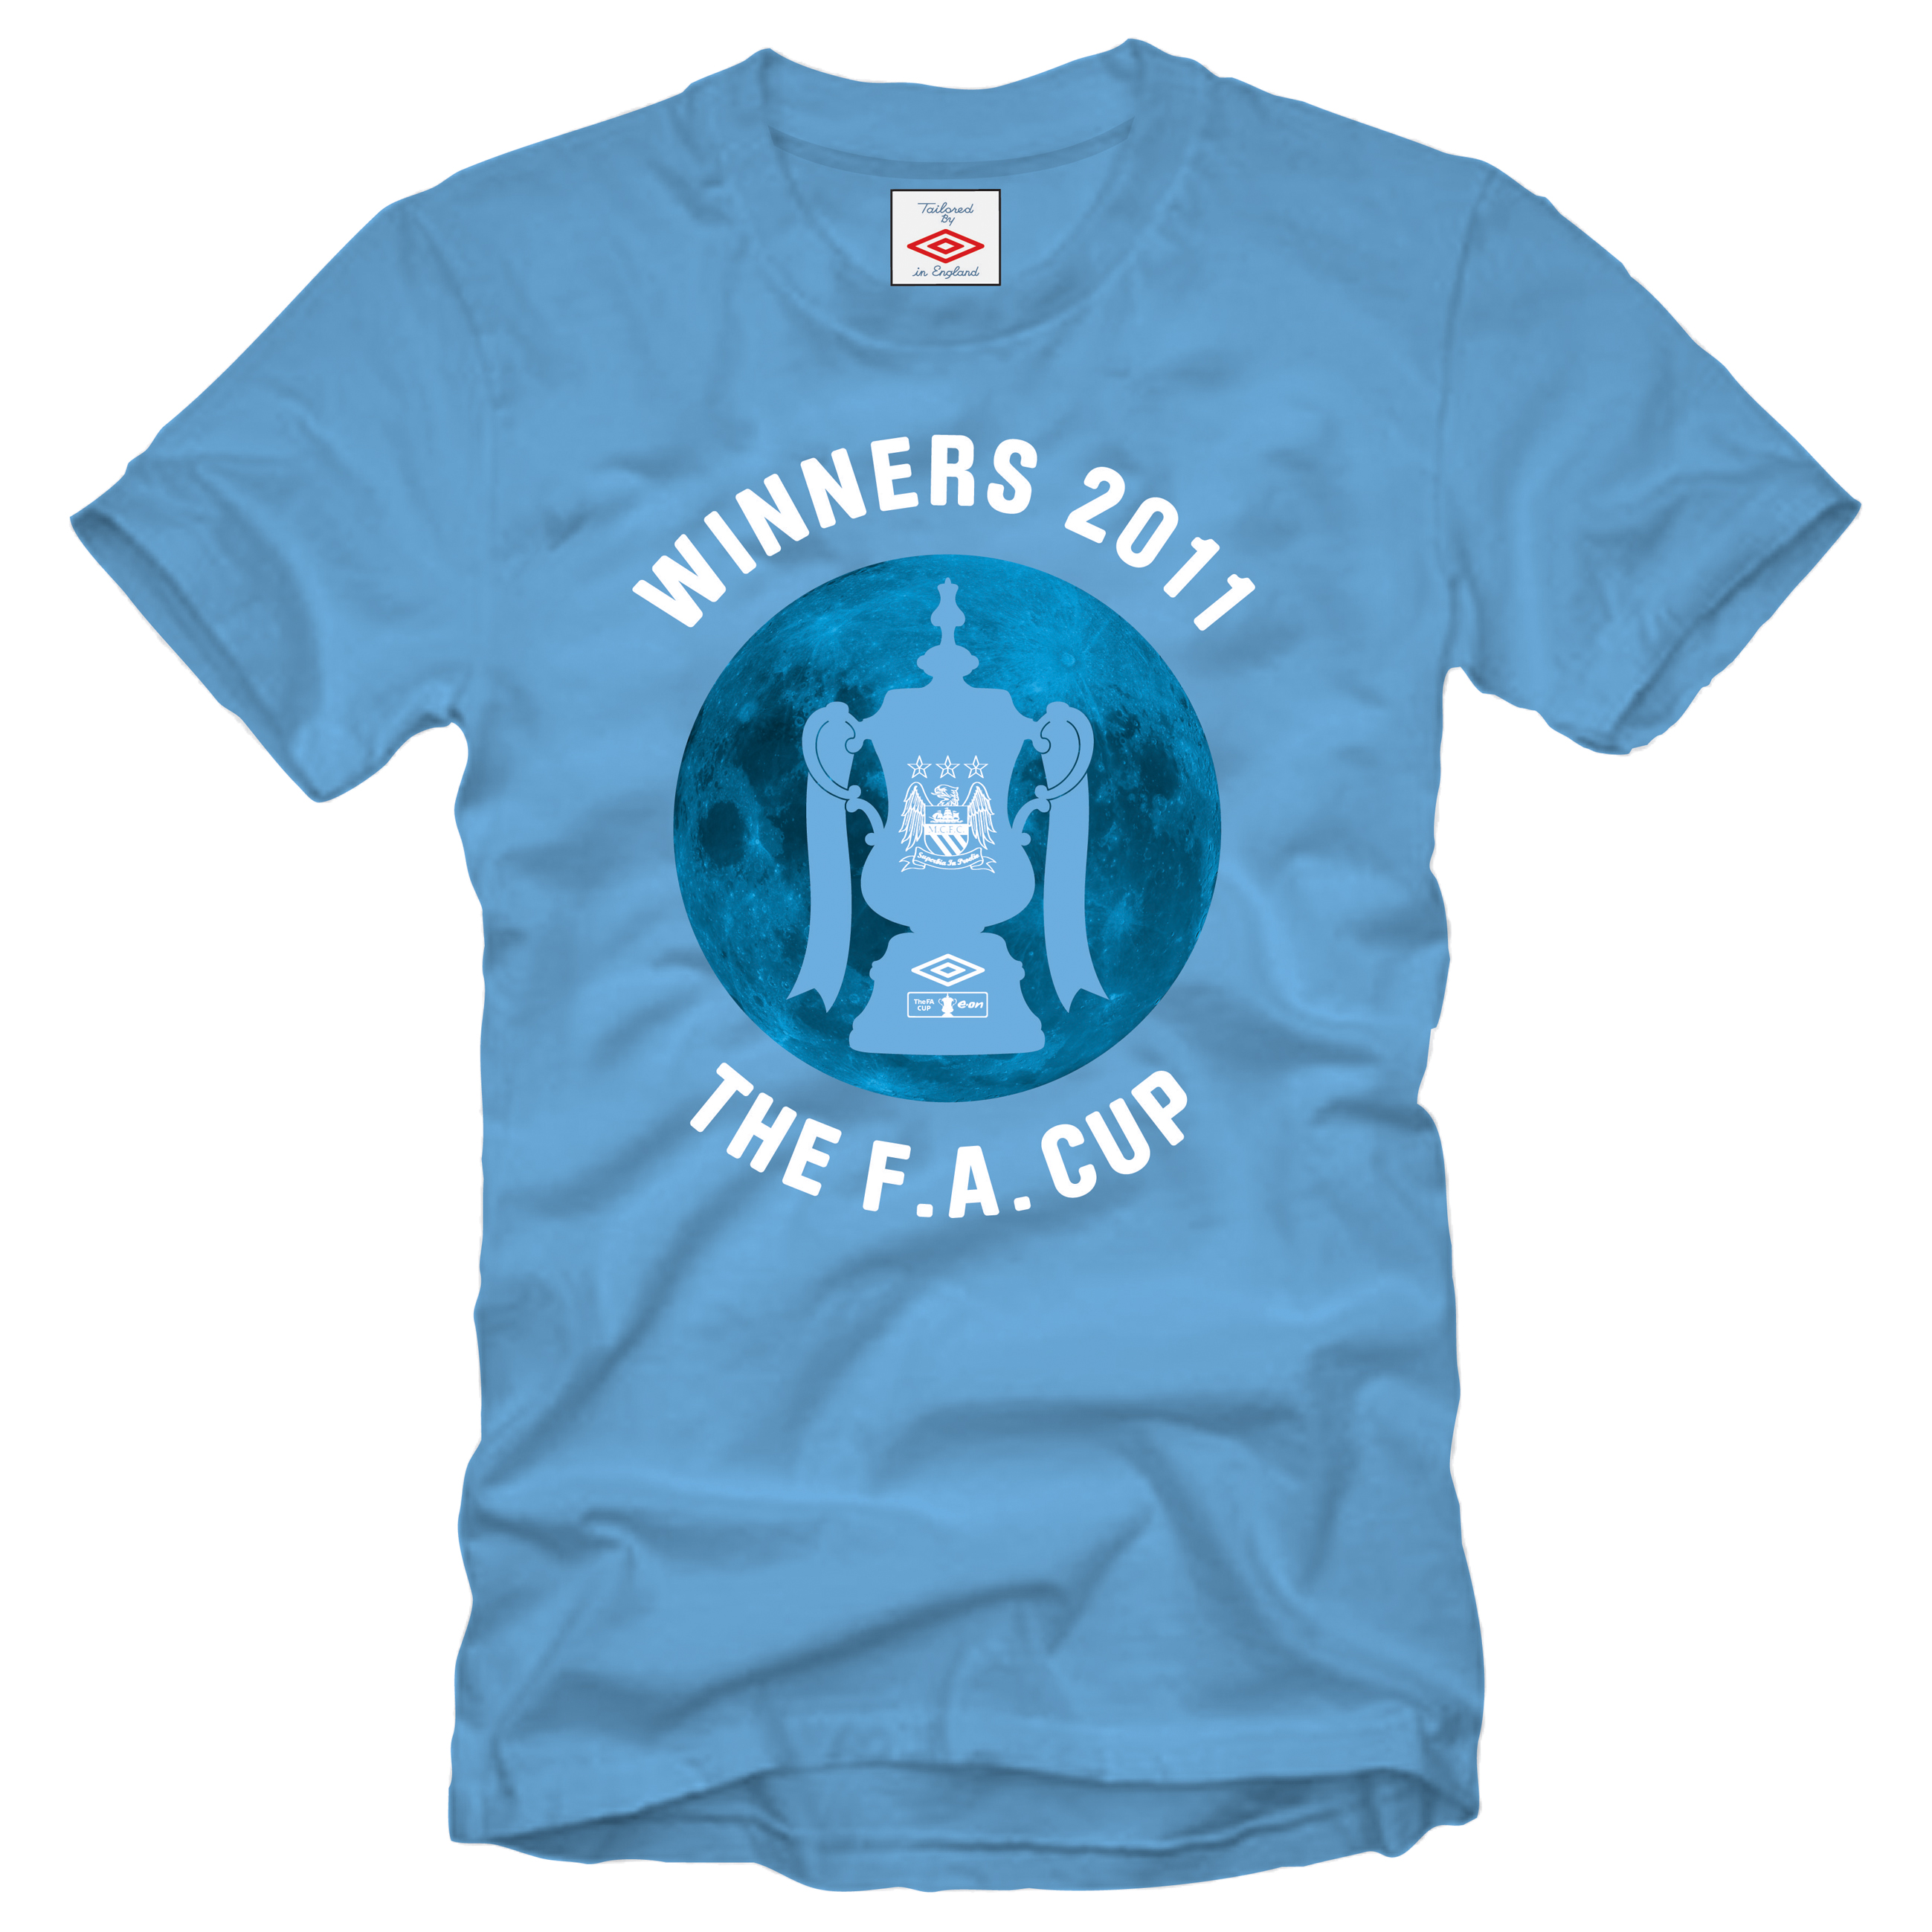 Manchester City The FA Cup Winners T-Shirt - Sky